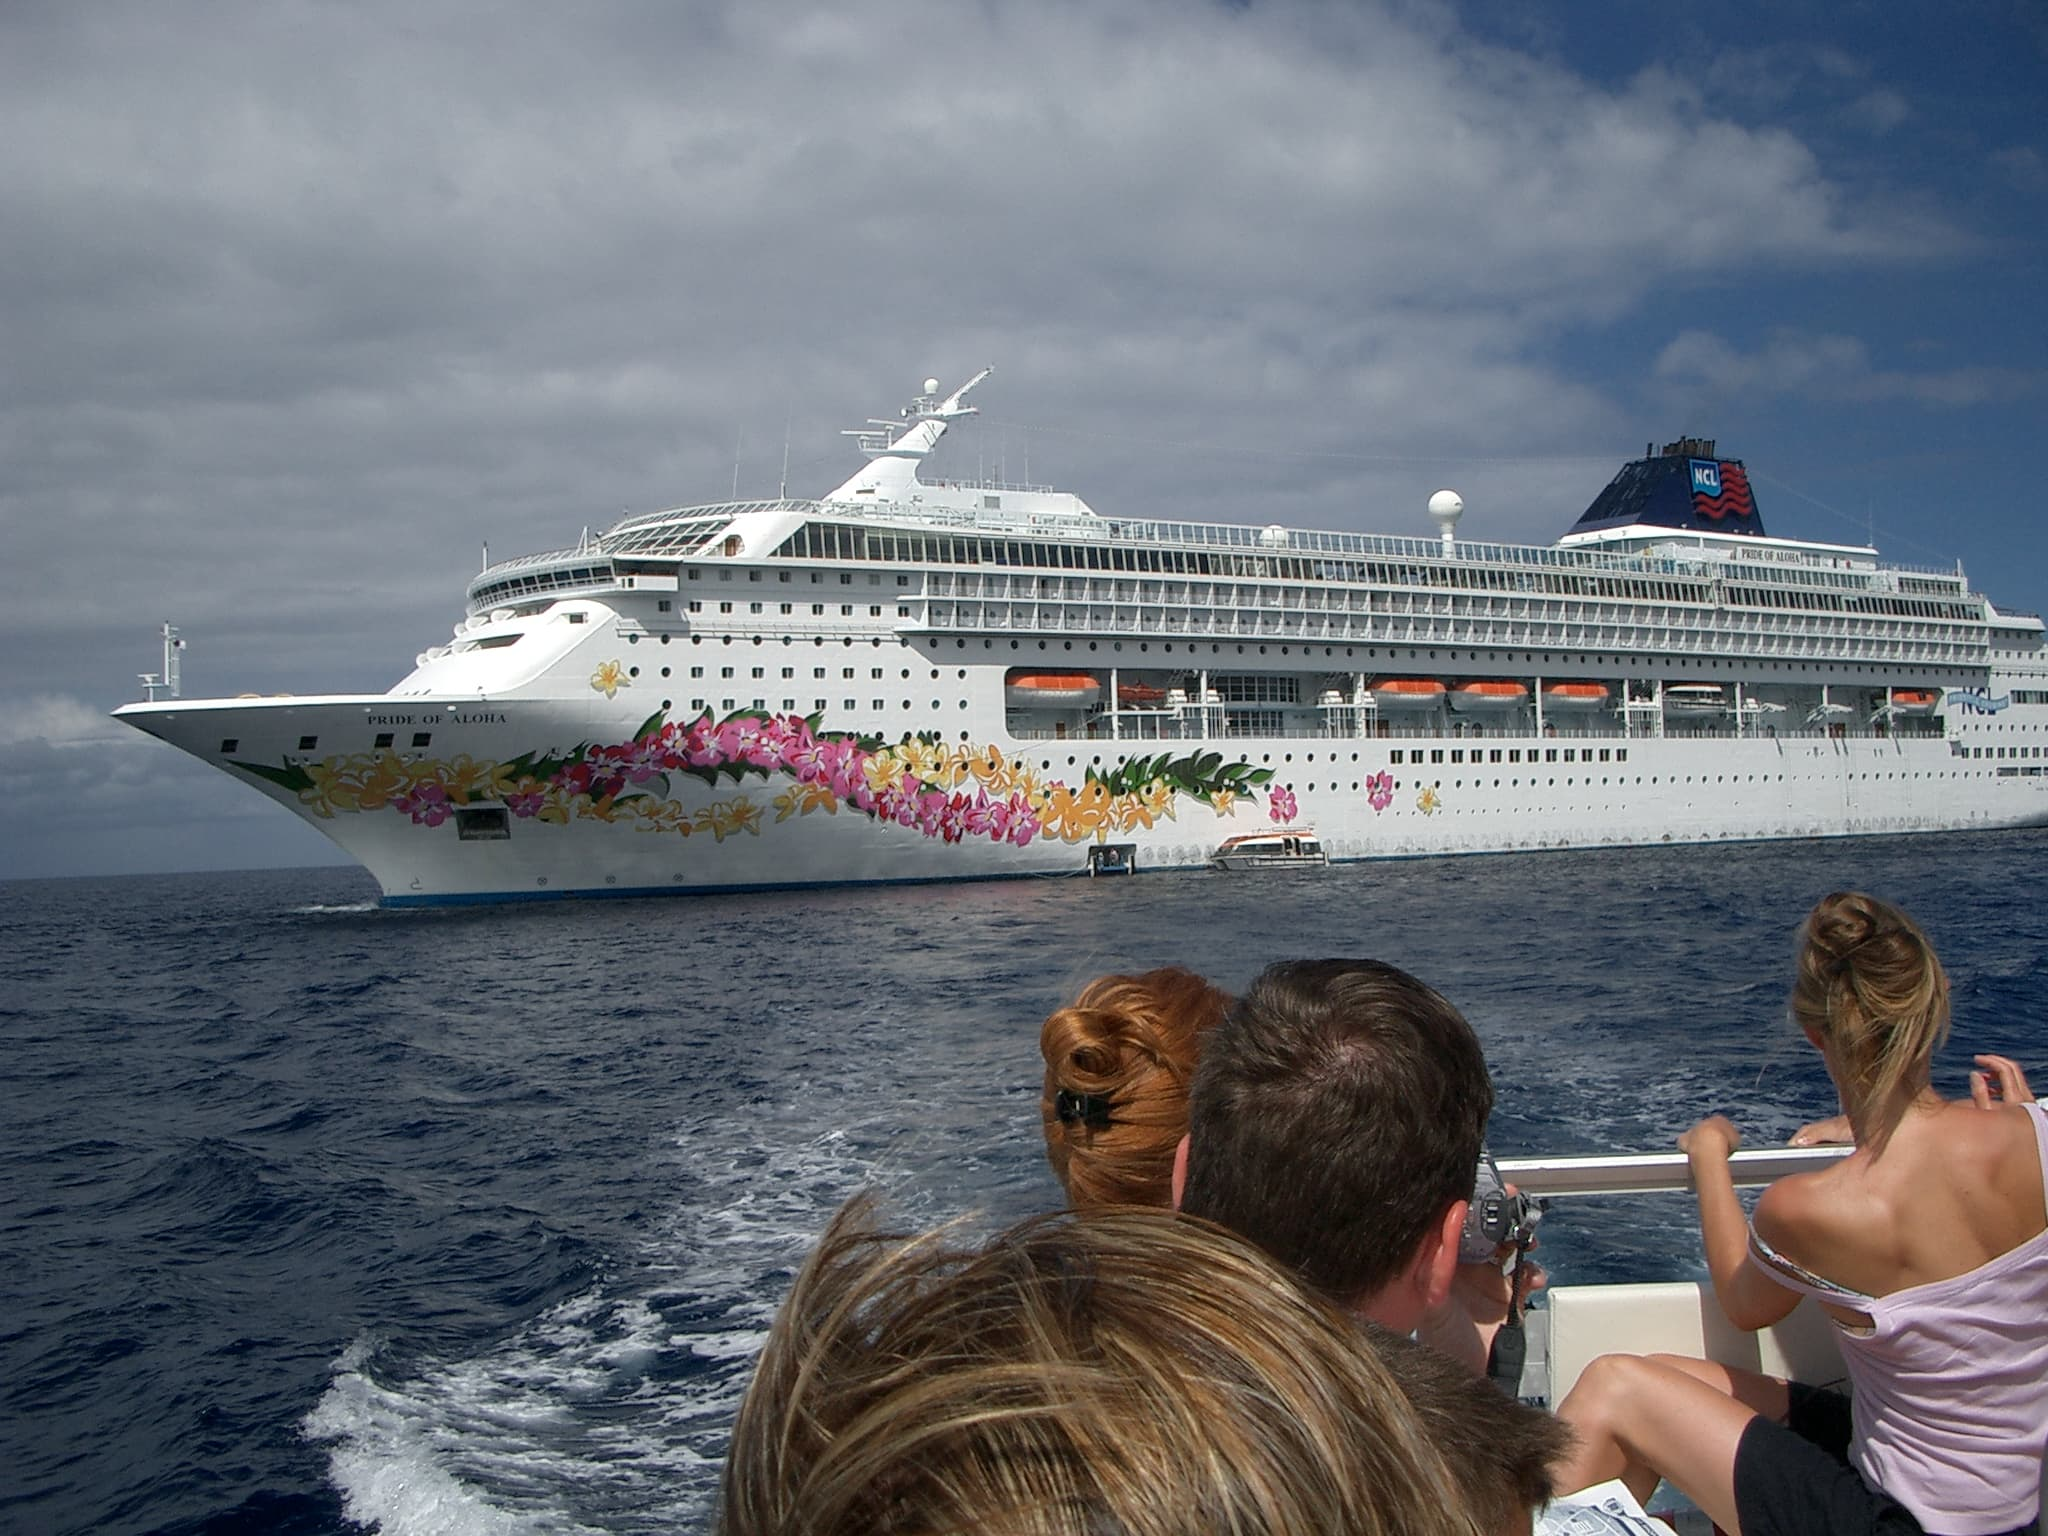 Cruise Ship People Fitbudha Com